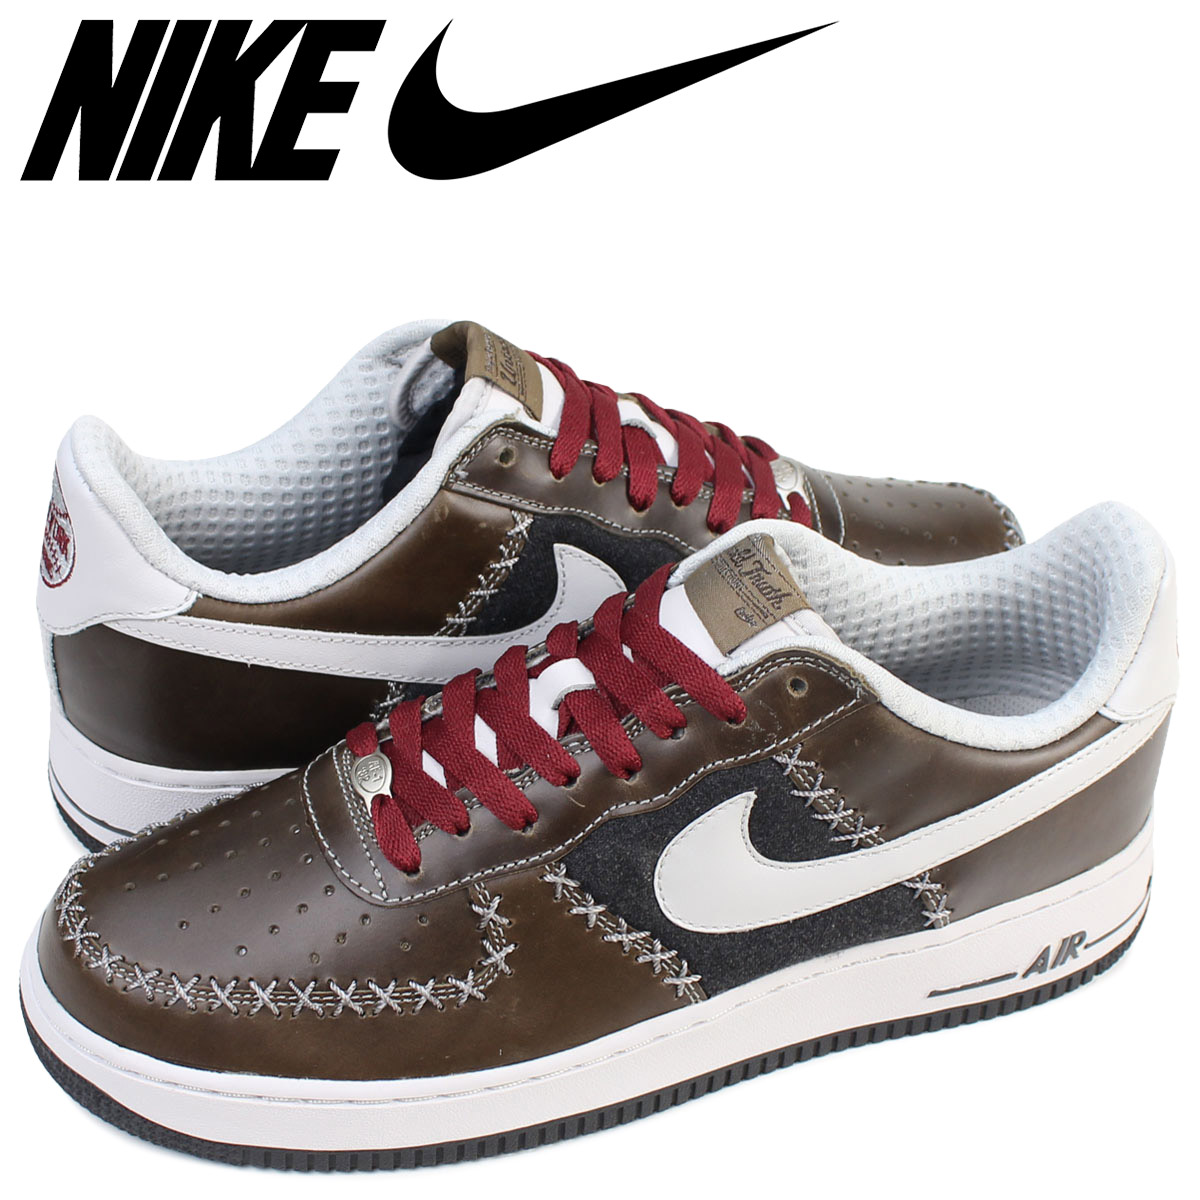 Nike NIKE air force 1 sneakers AIR FORCE 1 LOW PREMIUM UT UNTOLD TRUTH COLLECTION NEW YORK CUBANS men 313,461 001 shoes low brown